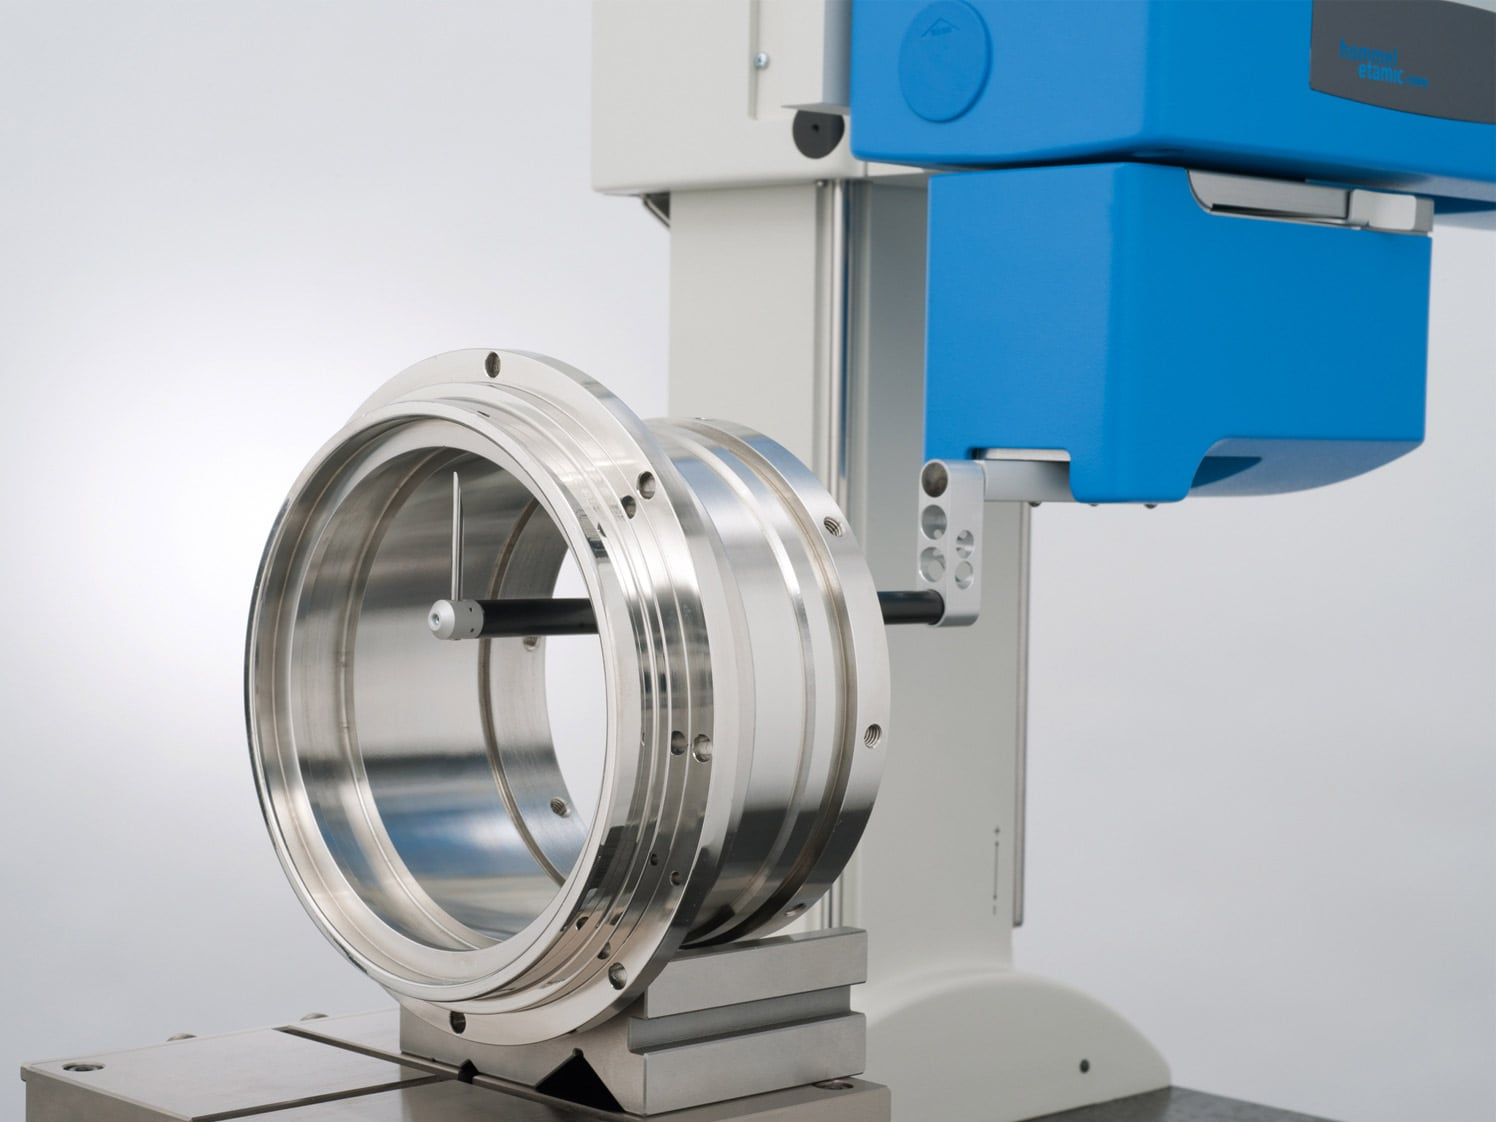 Contour measurement - Measurement of angles, radii, distances and coordinates of your workpieces